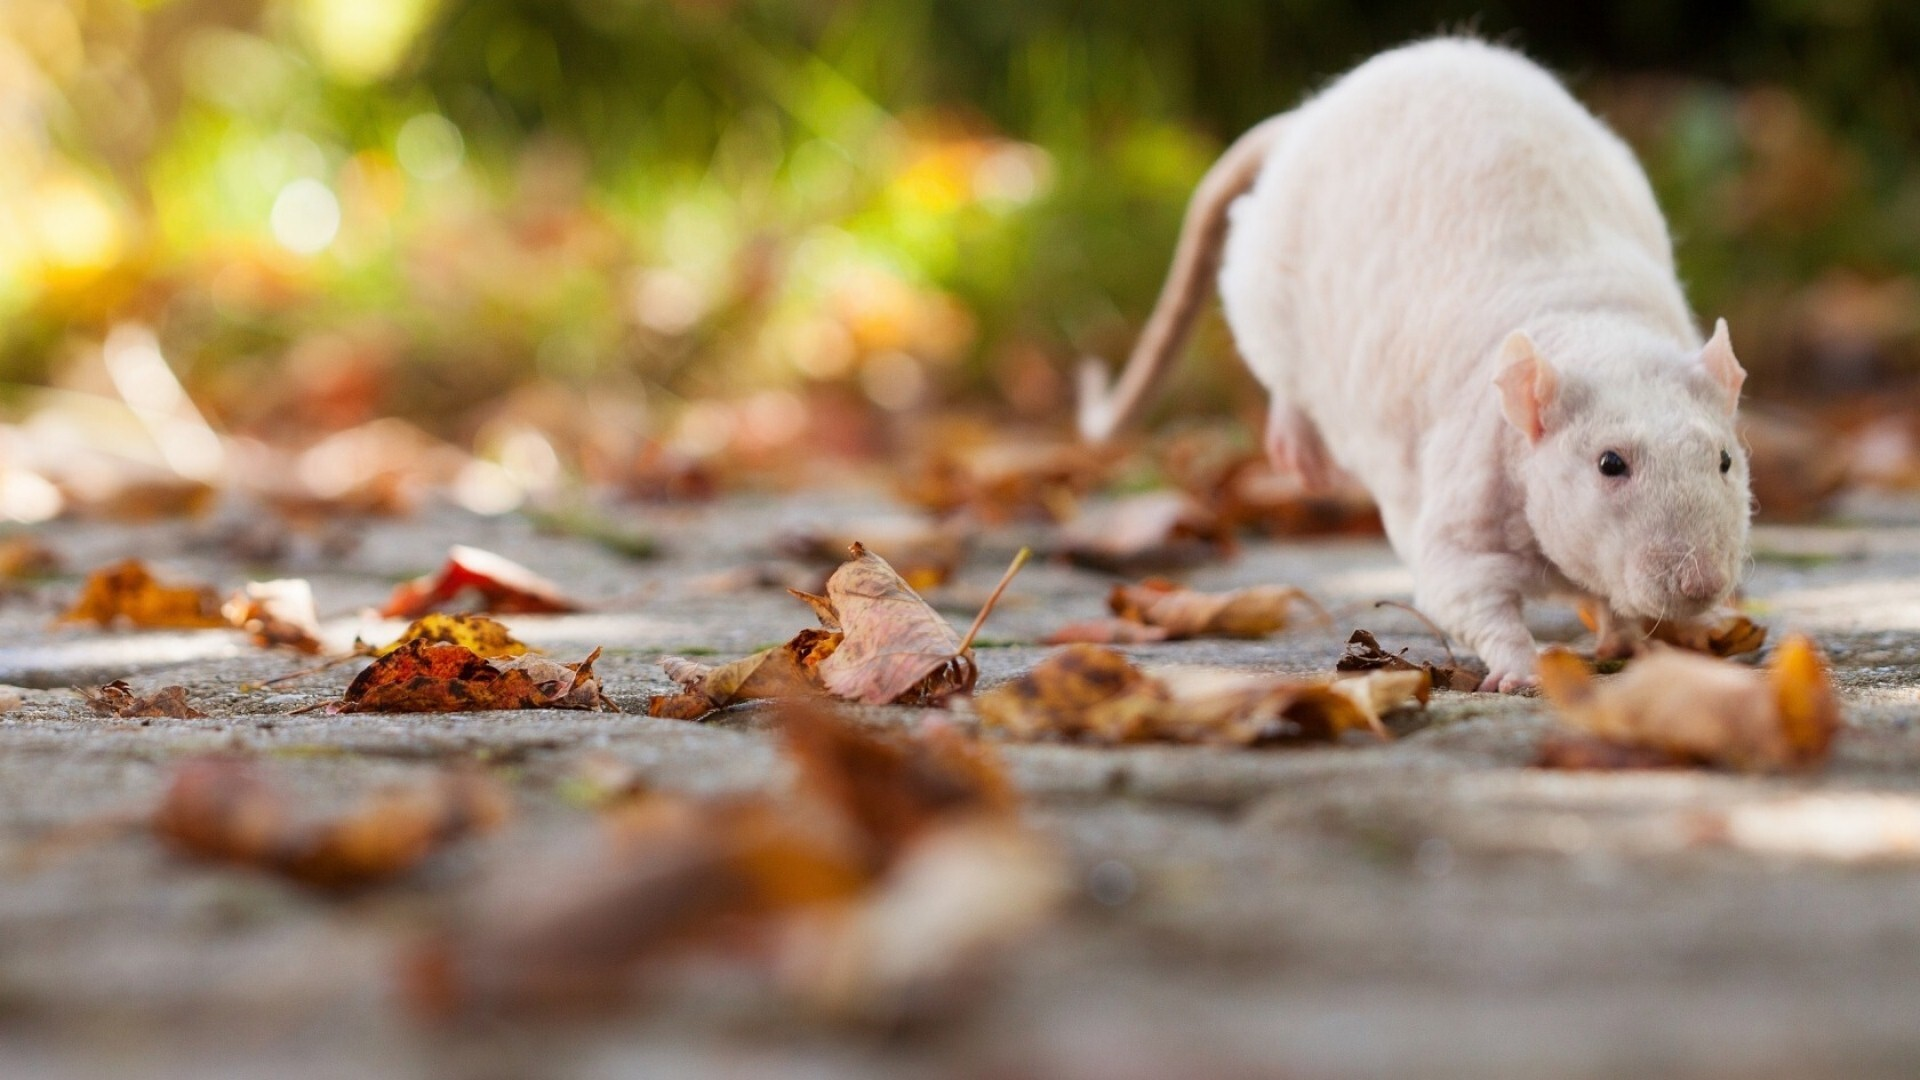 Mouse During Autumn Season Wallpaper HD Wallpapers